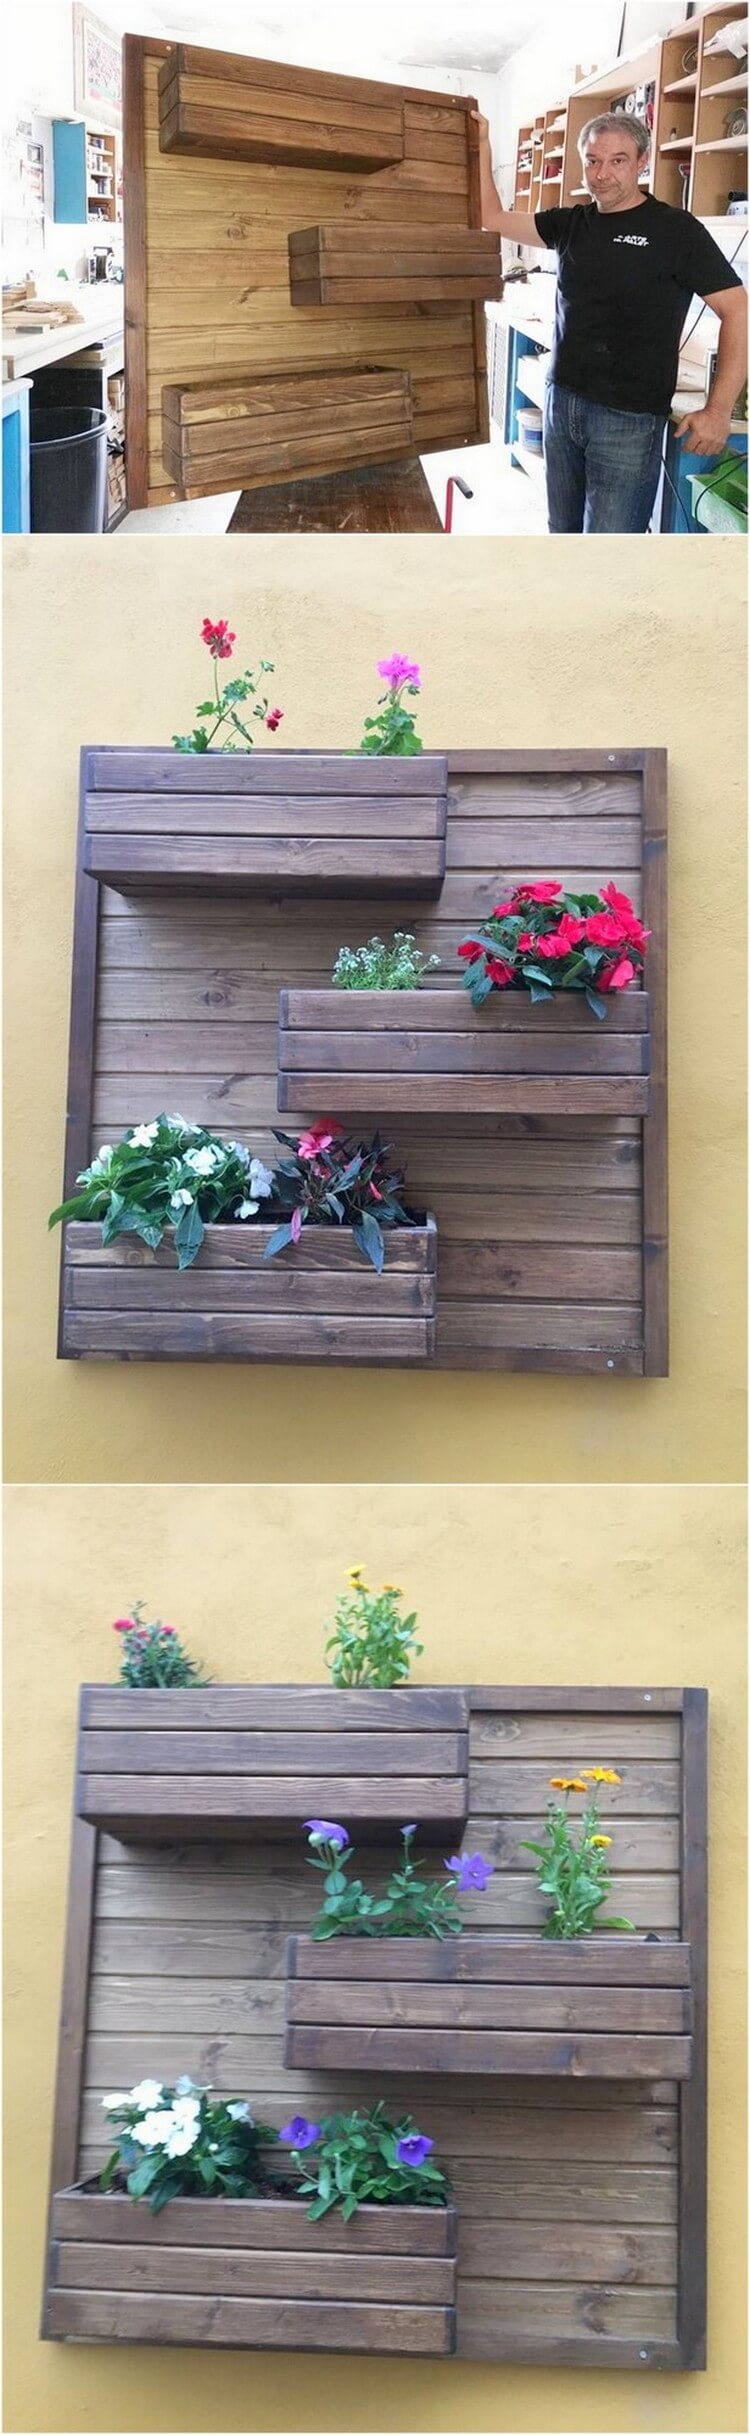 50 creative diy wood pallet ideas for this summer for Creative pallet